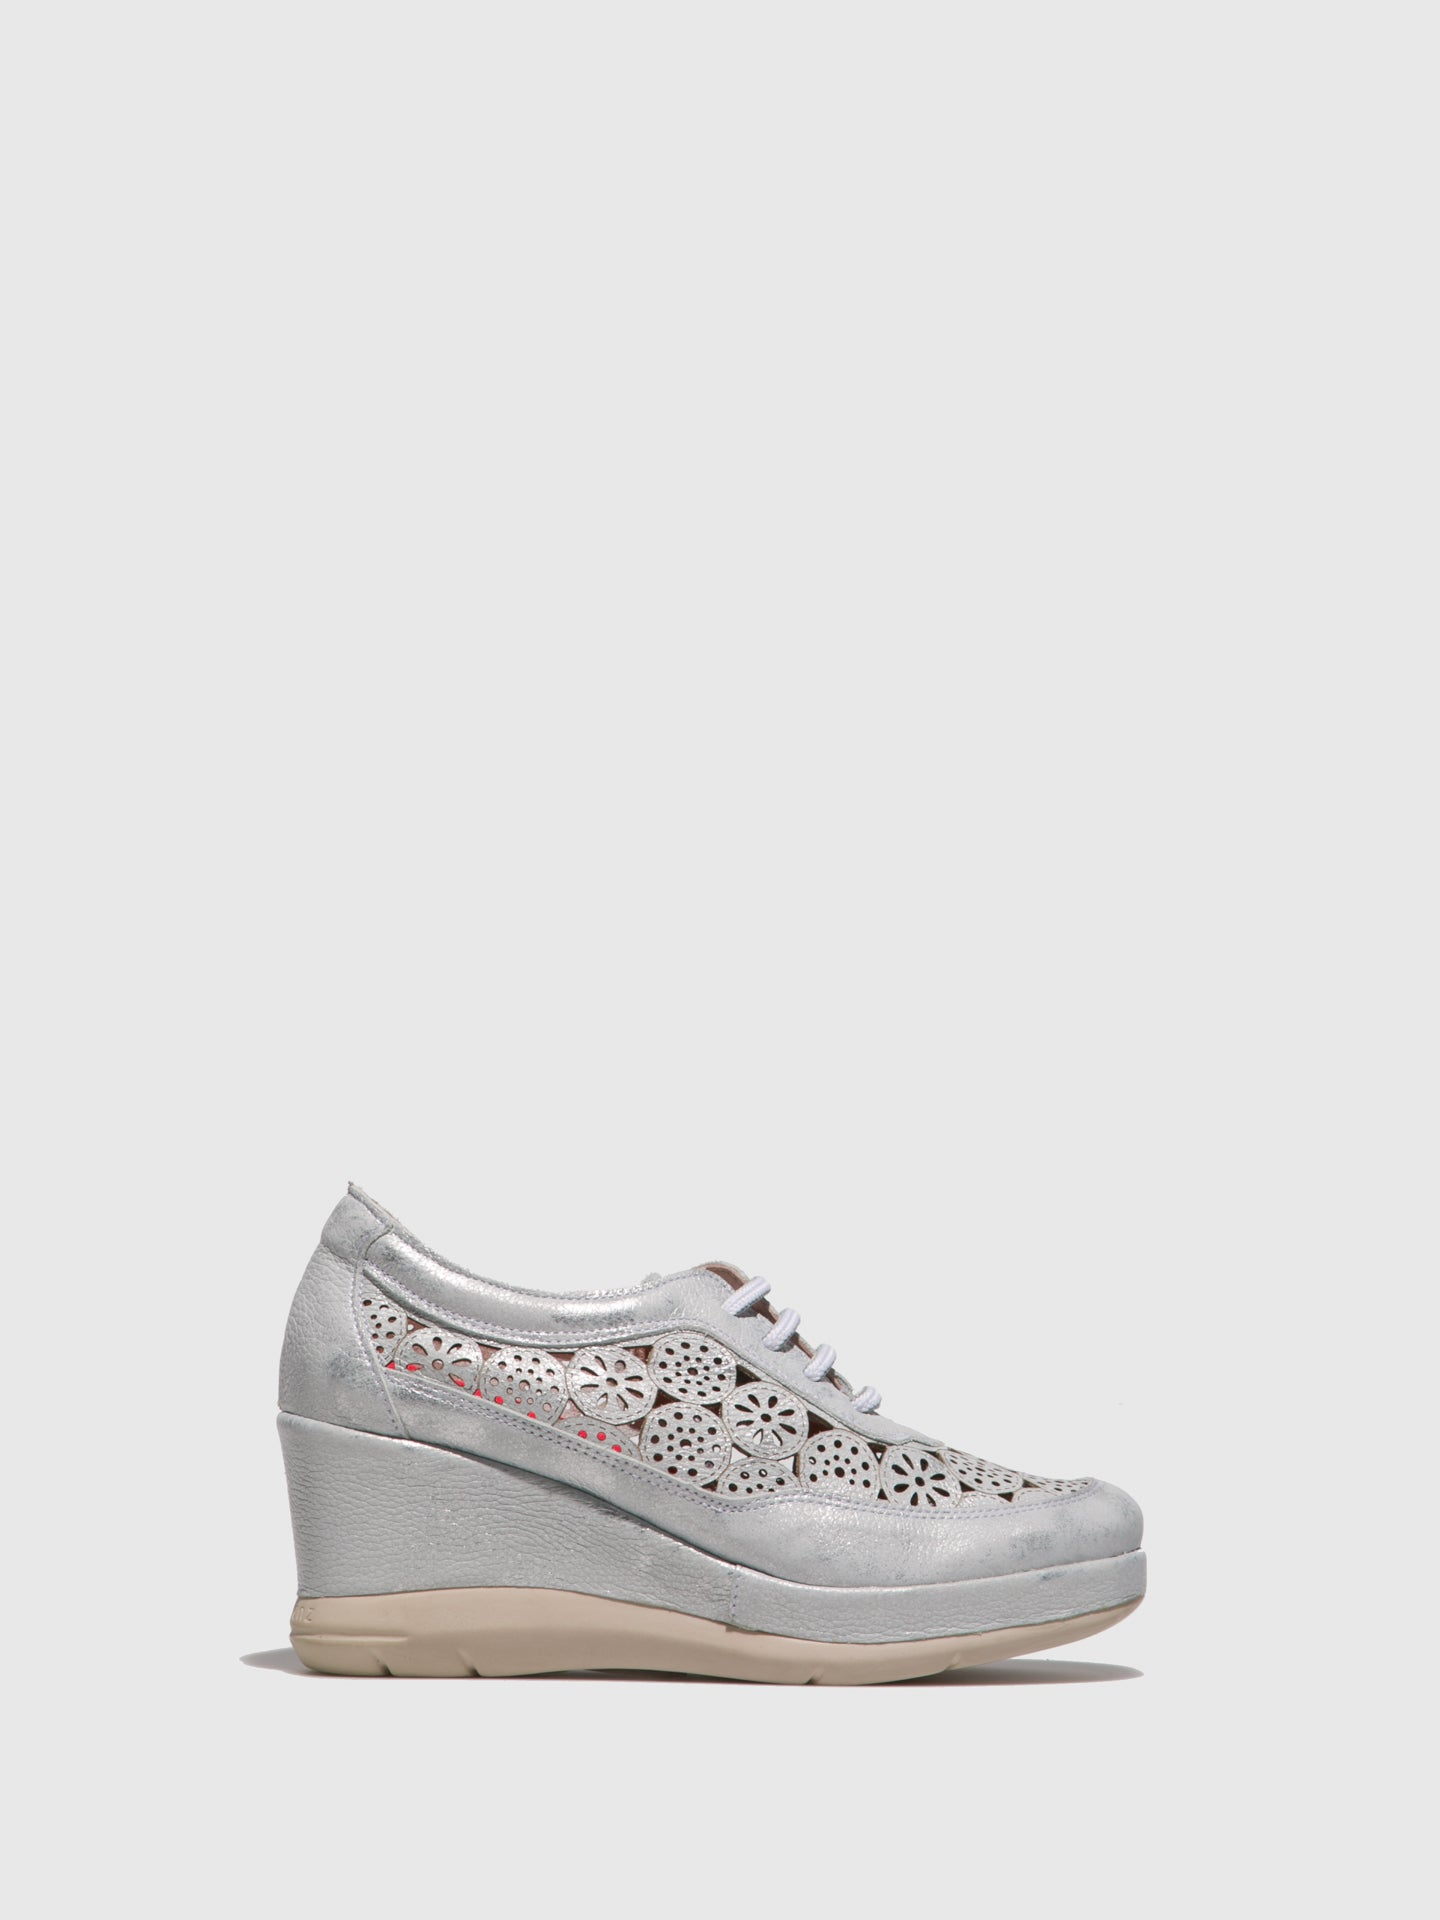 Jose Saenz Silver Wedge Shoes